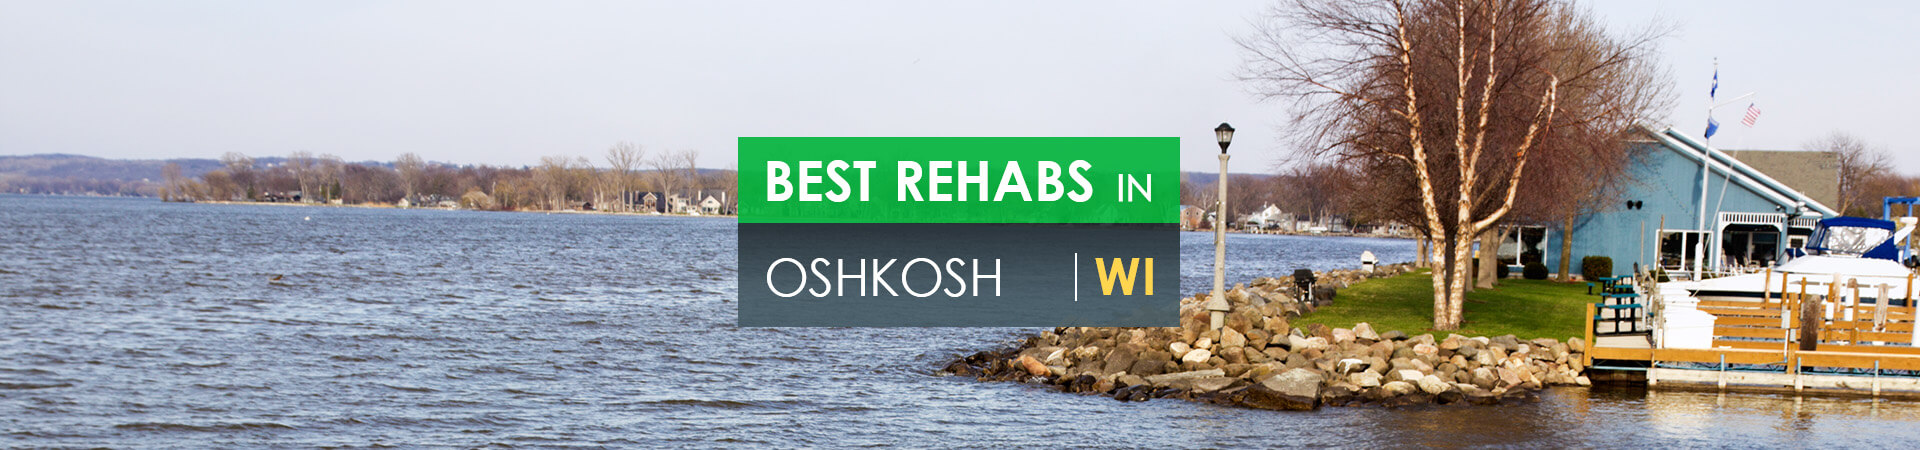 Best rehabs in Oshkosh, WI